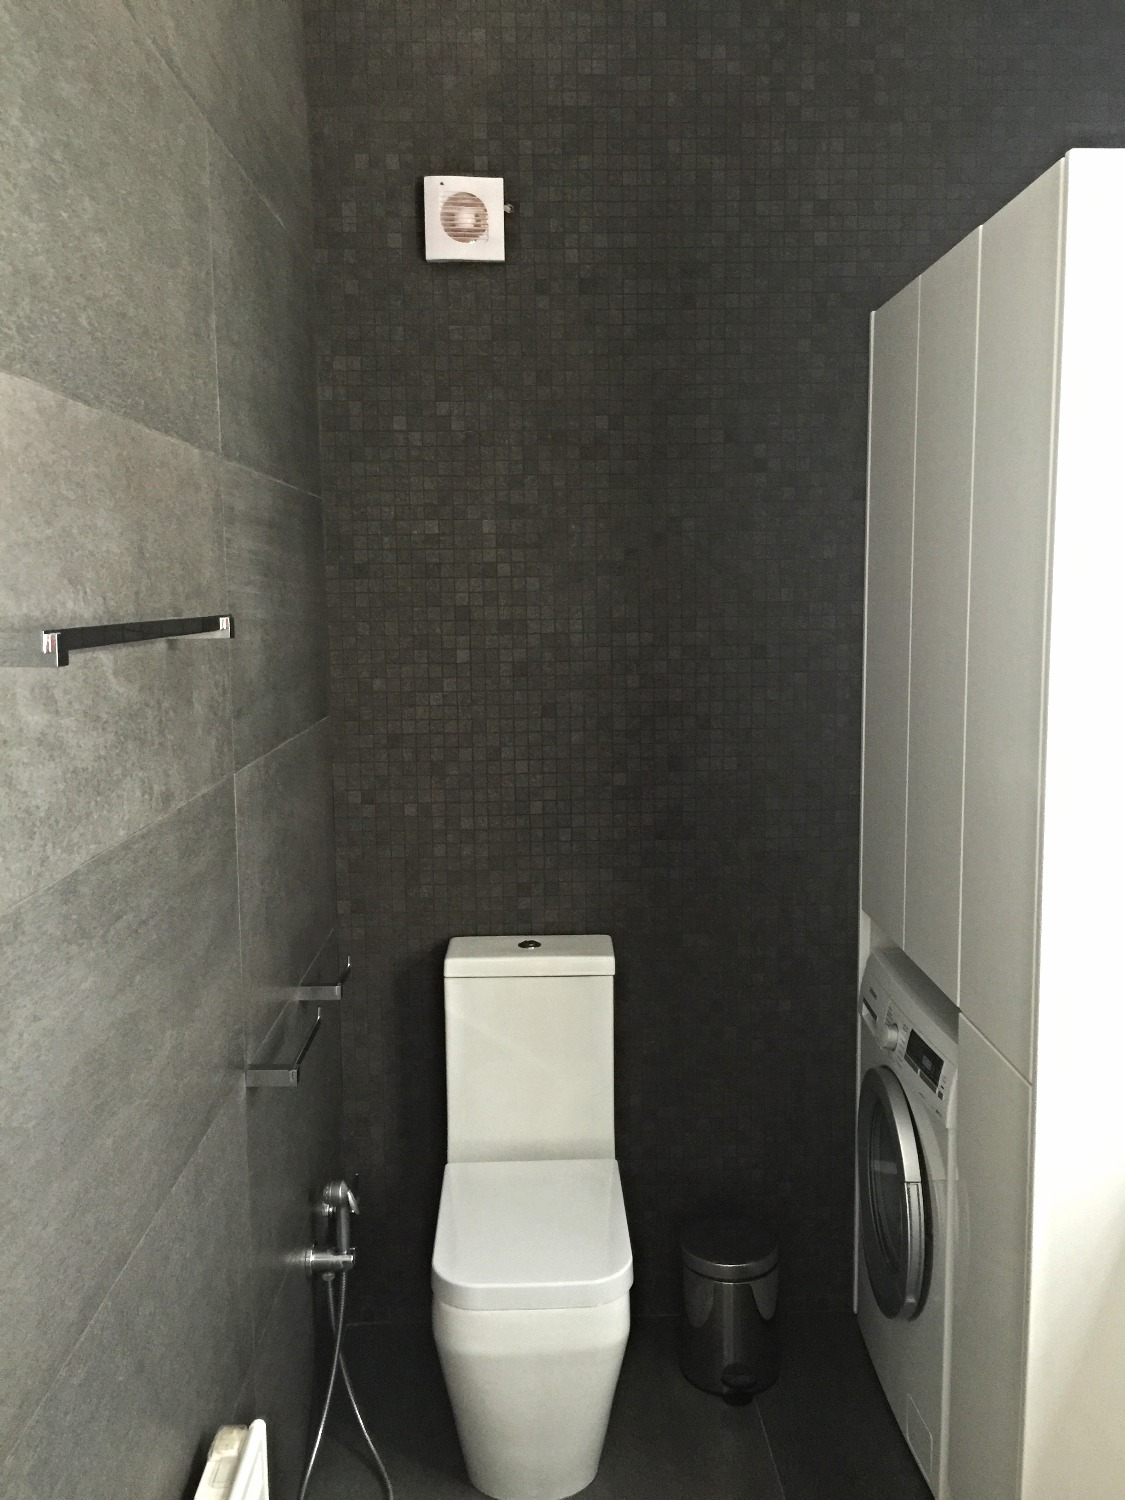 TOILET (GROUND FLOOR)